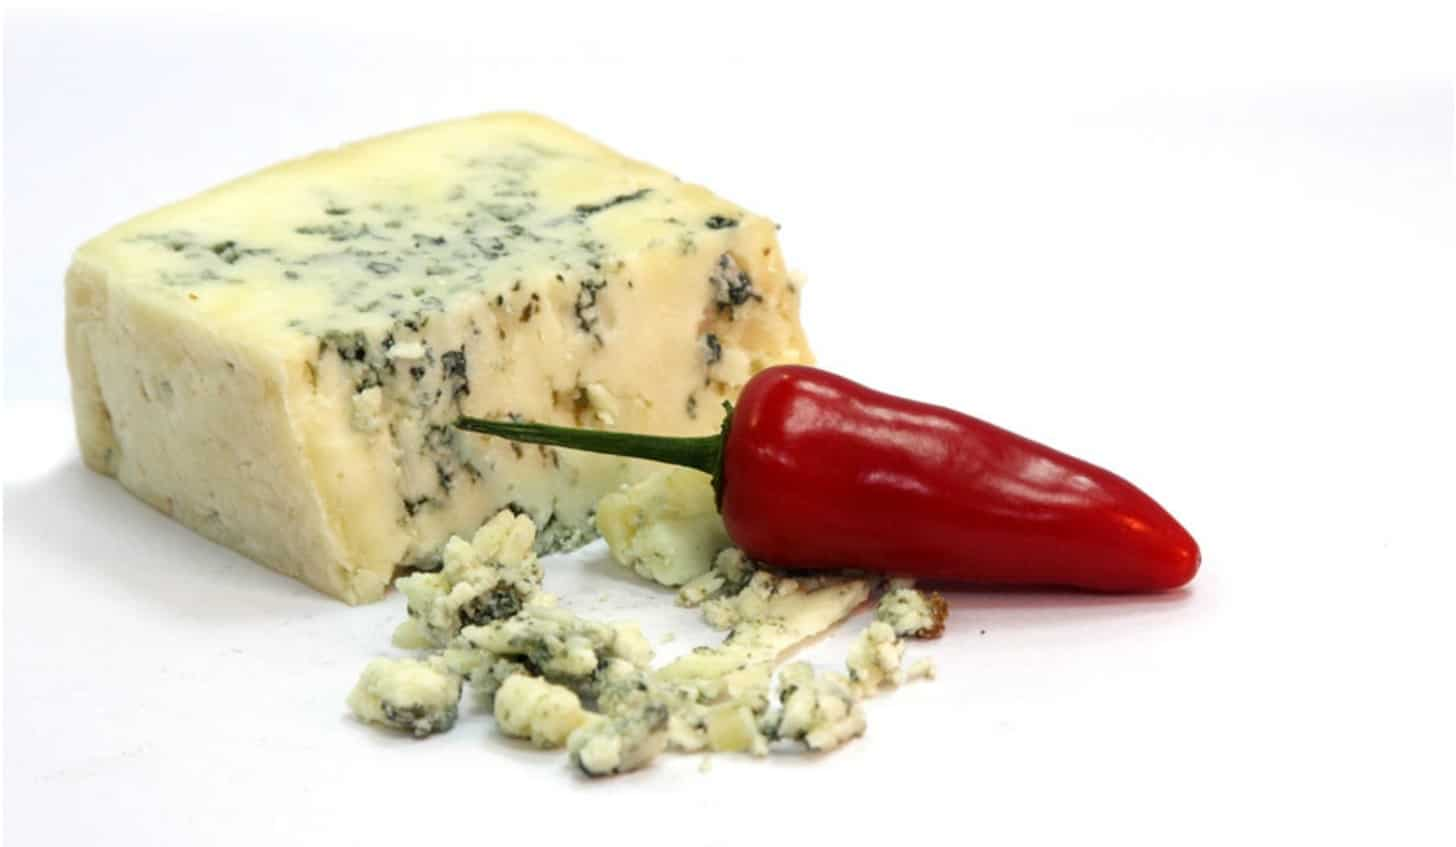 Strong blue cheese and a chili on a chopping board at wedding catering east lothian